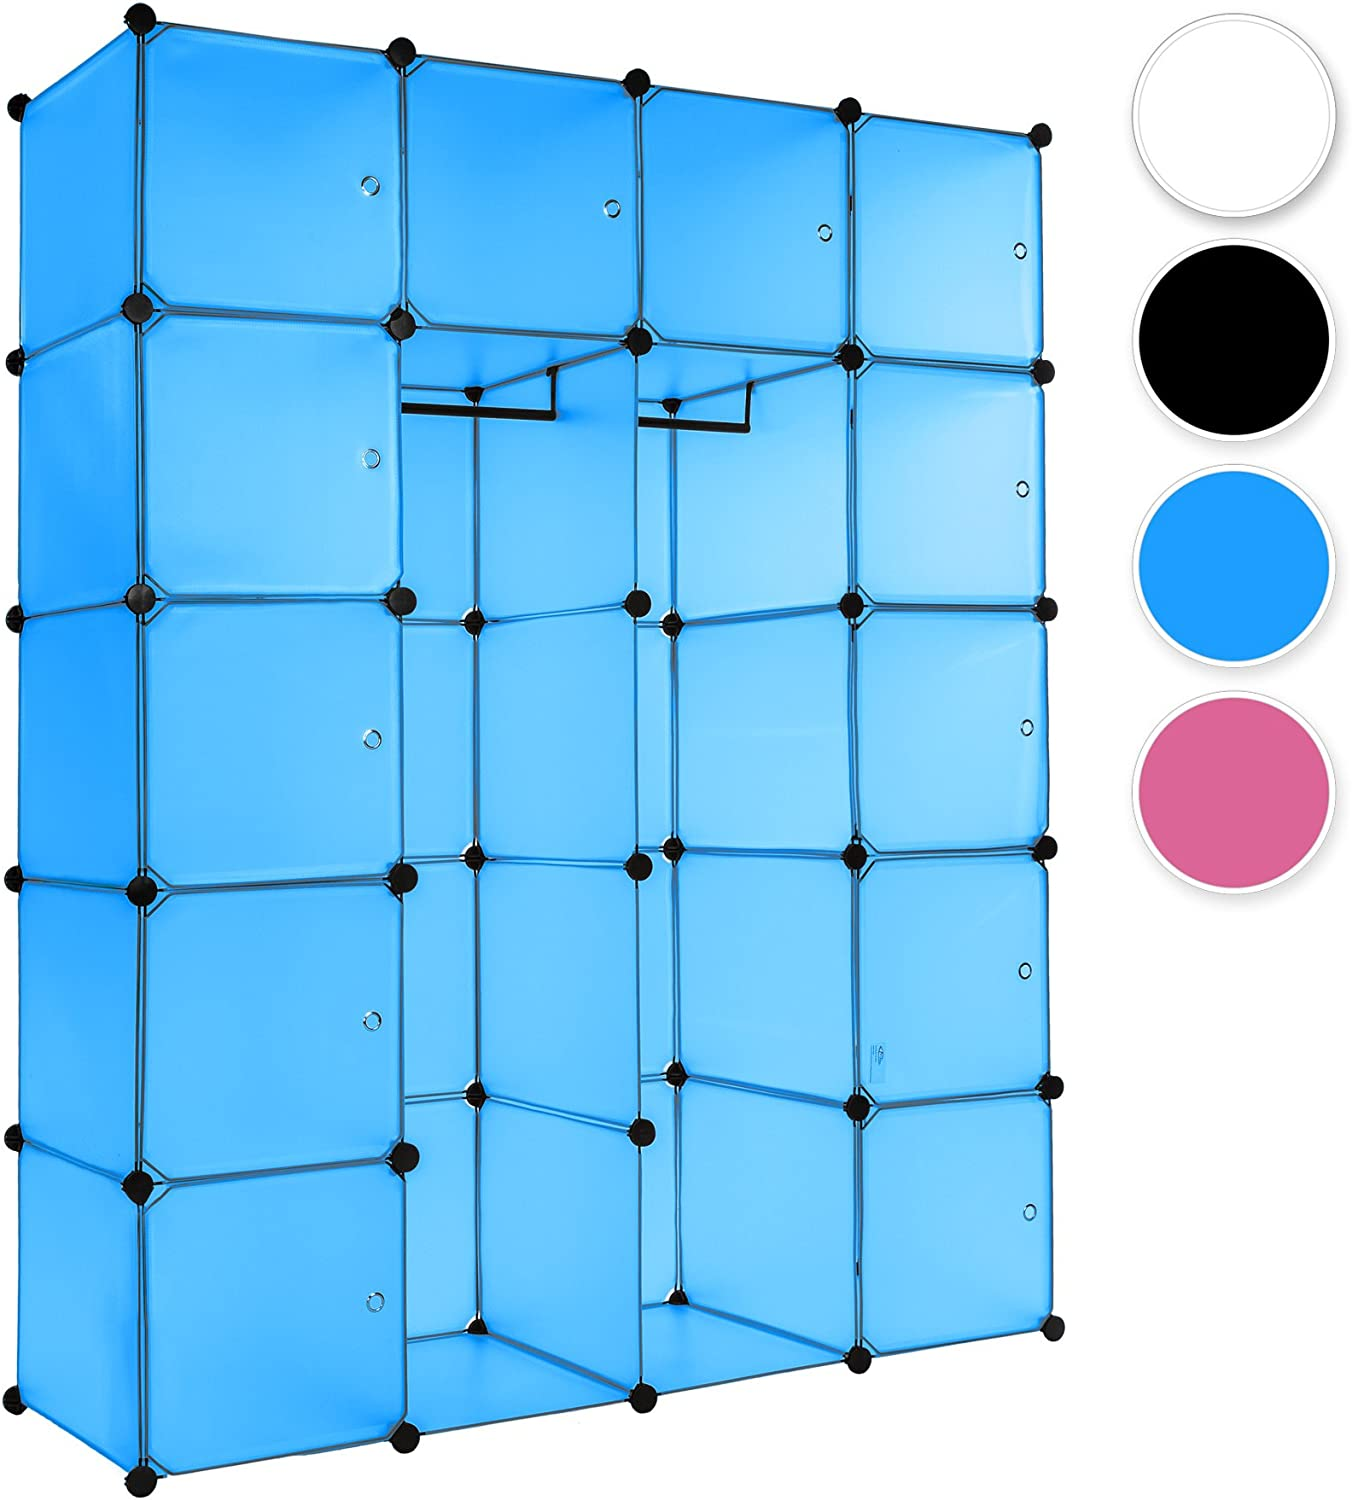 TecTake Plastic shelf storage wardrobe rack organiser cube shelving system stand with clothes rail (Blue | No. 402088)